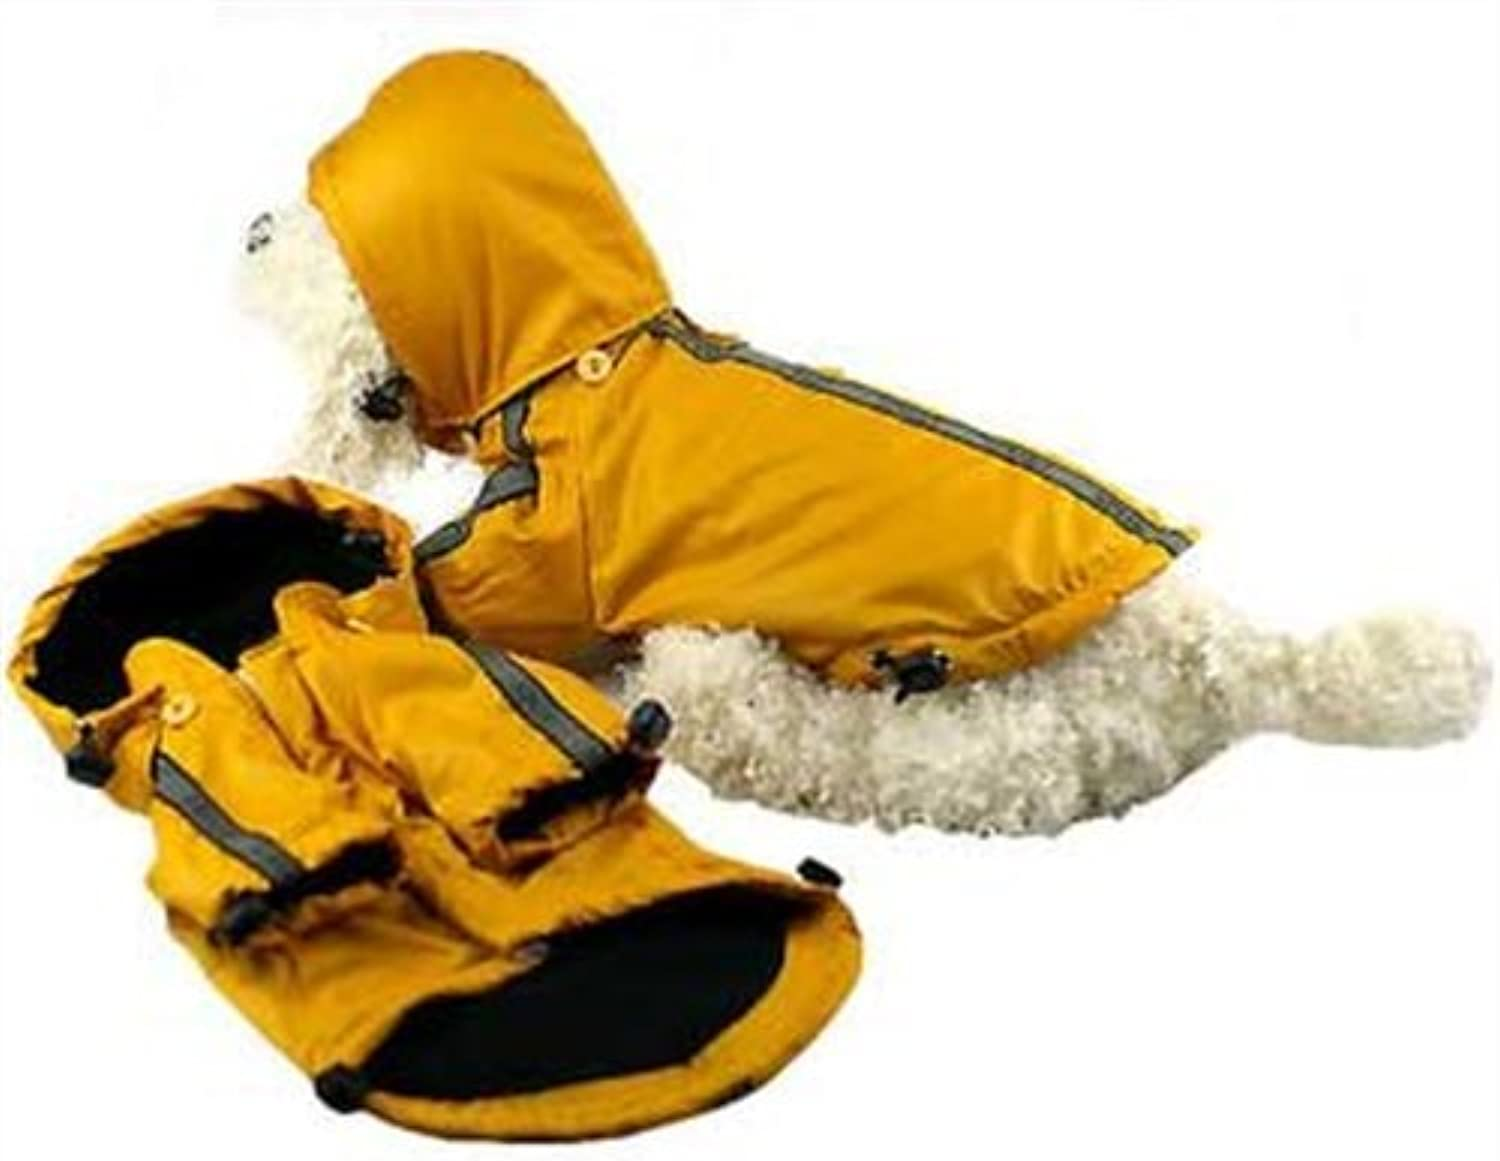 Pet Life ReflectaSport Rain Jacket, Yellow, Large